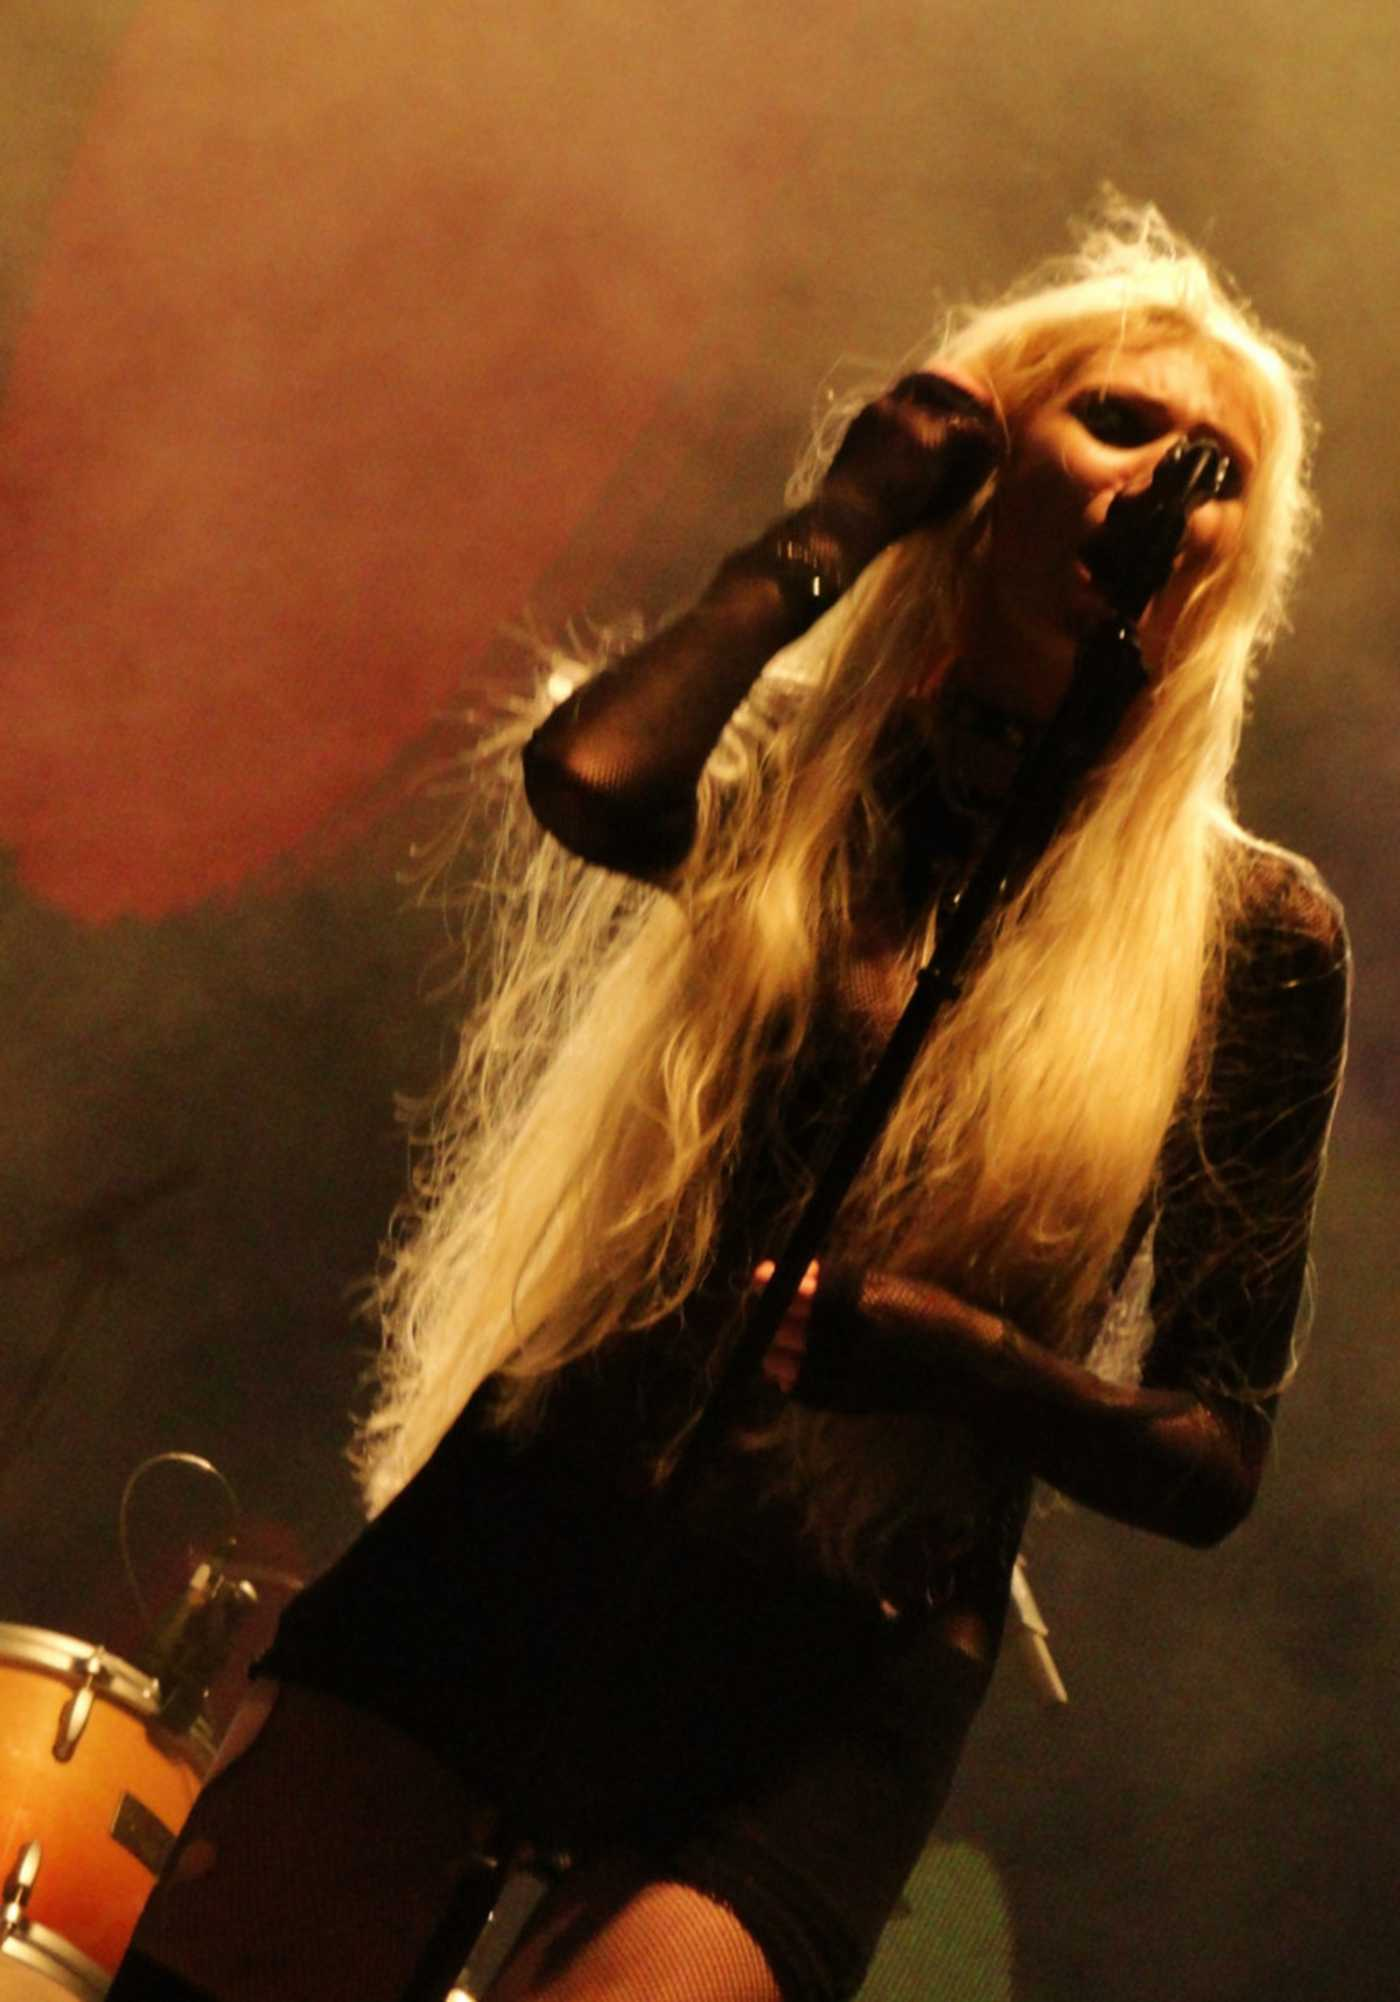 Taylor Momsen Intercity Music Festival in China Sept